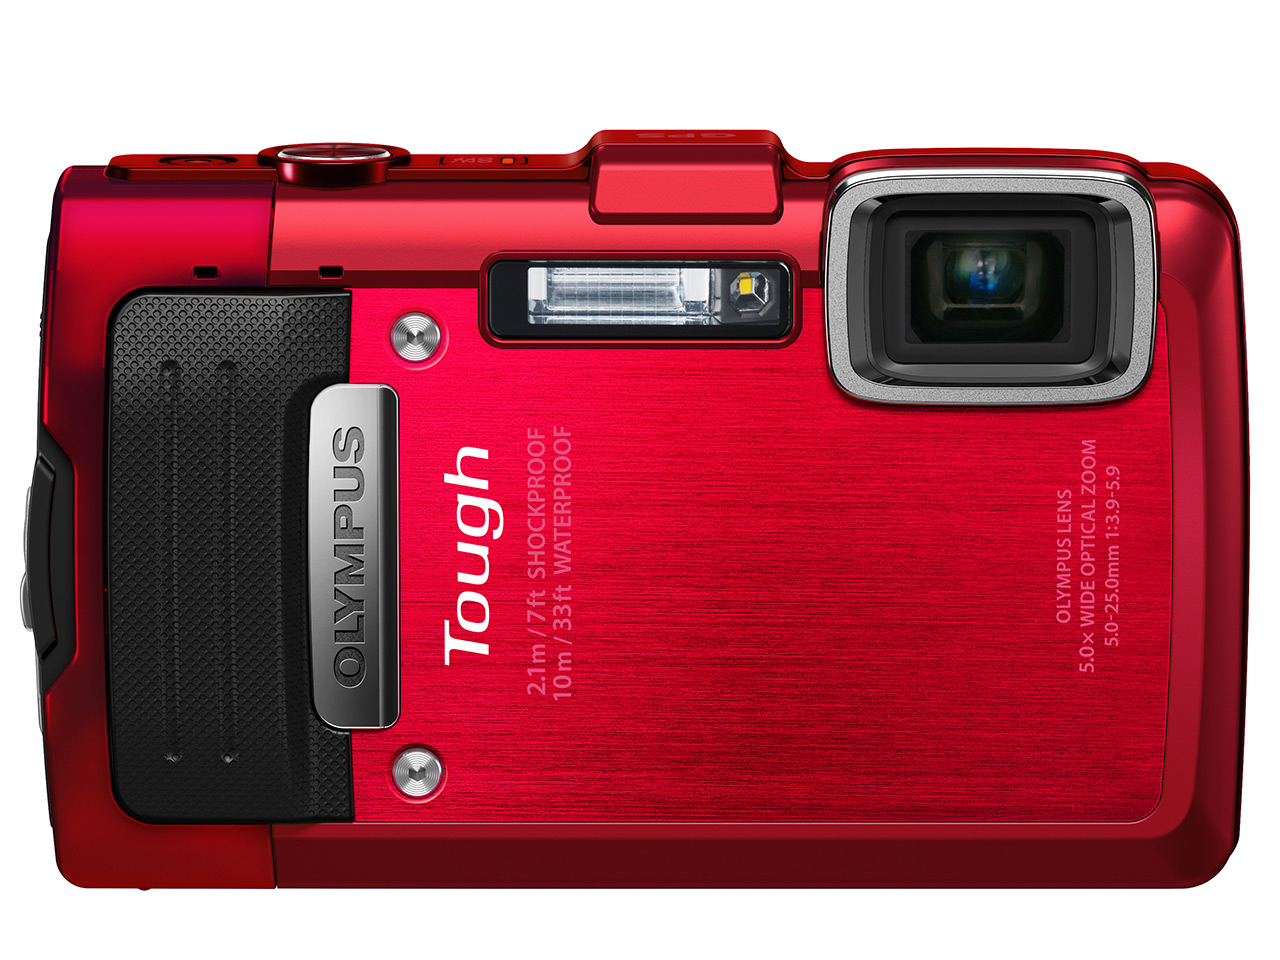 More Tough Love Two New Olympus Stylus Ihs Cameras Join The Lineup